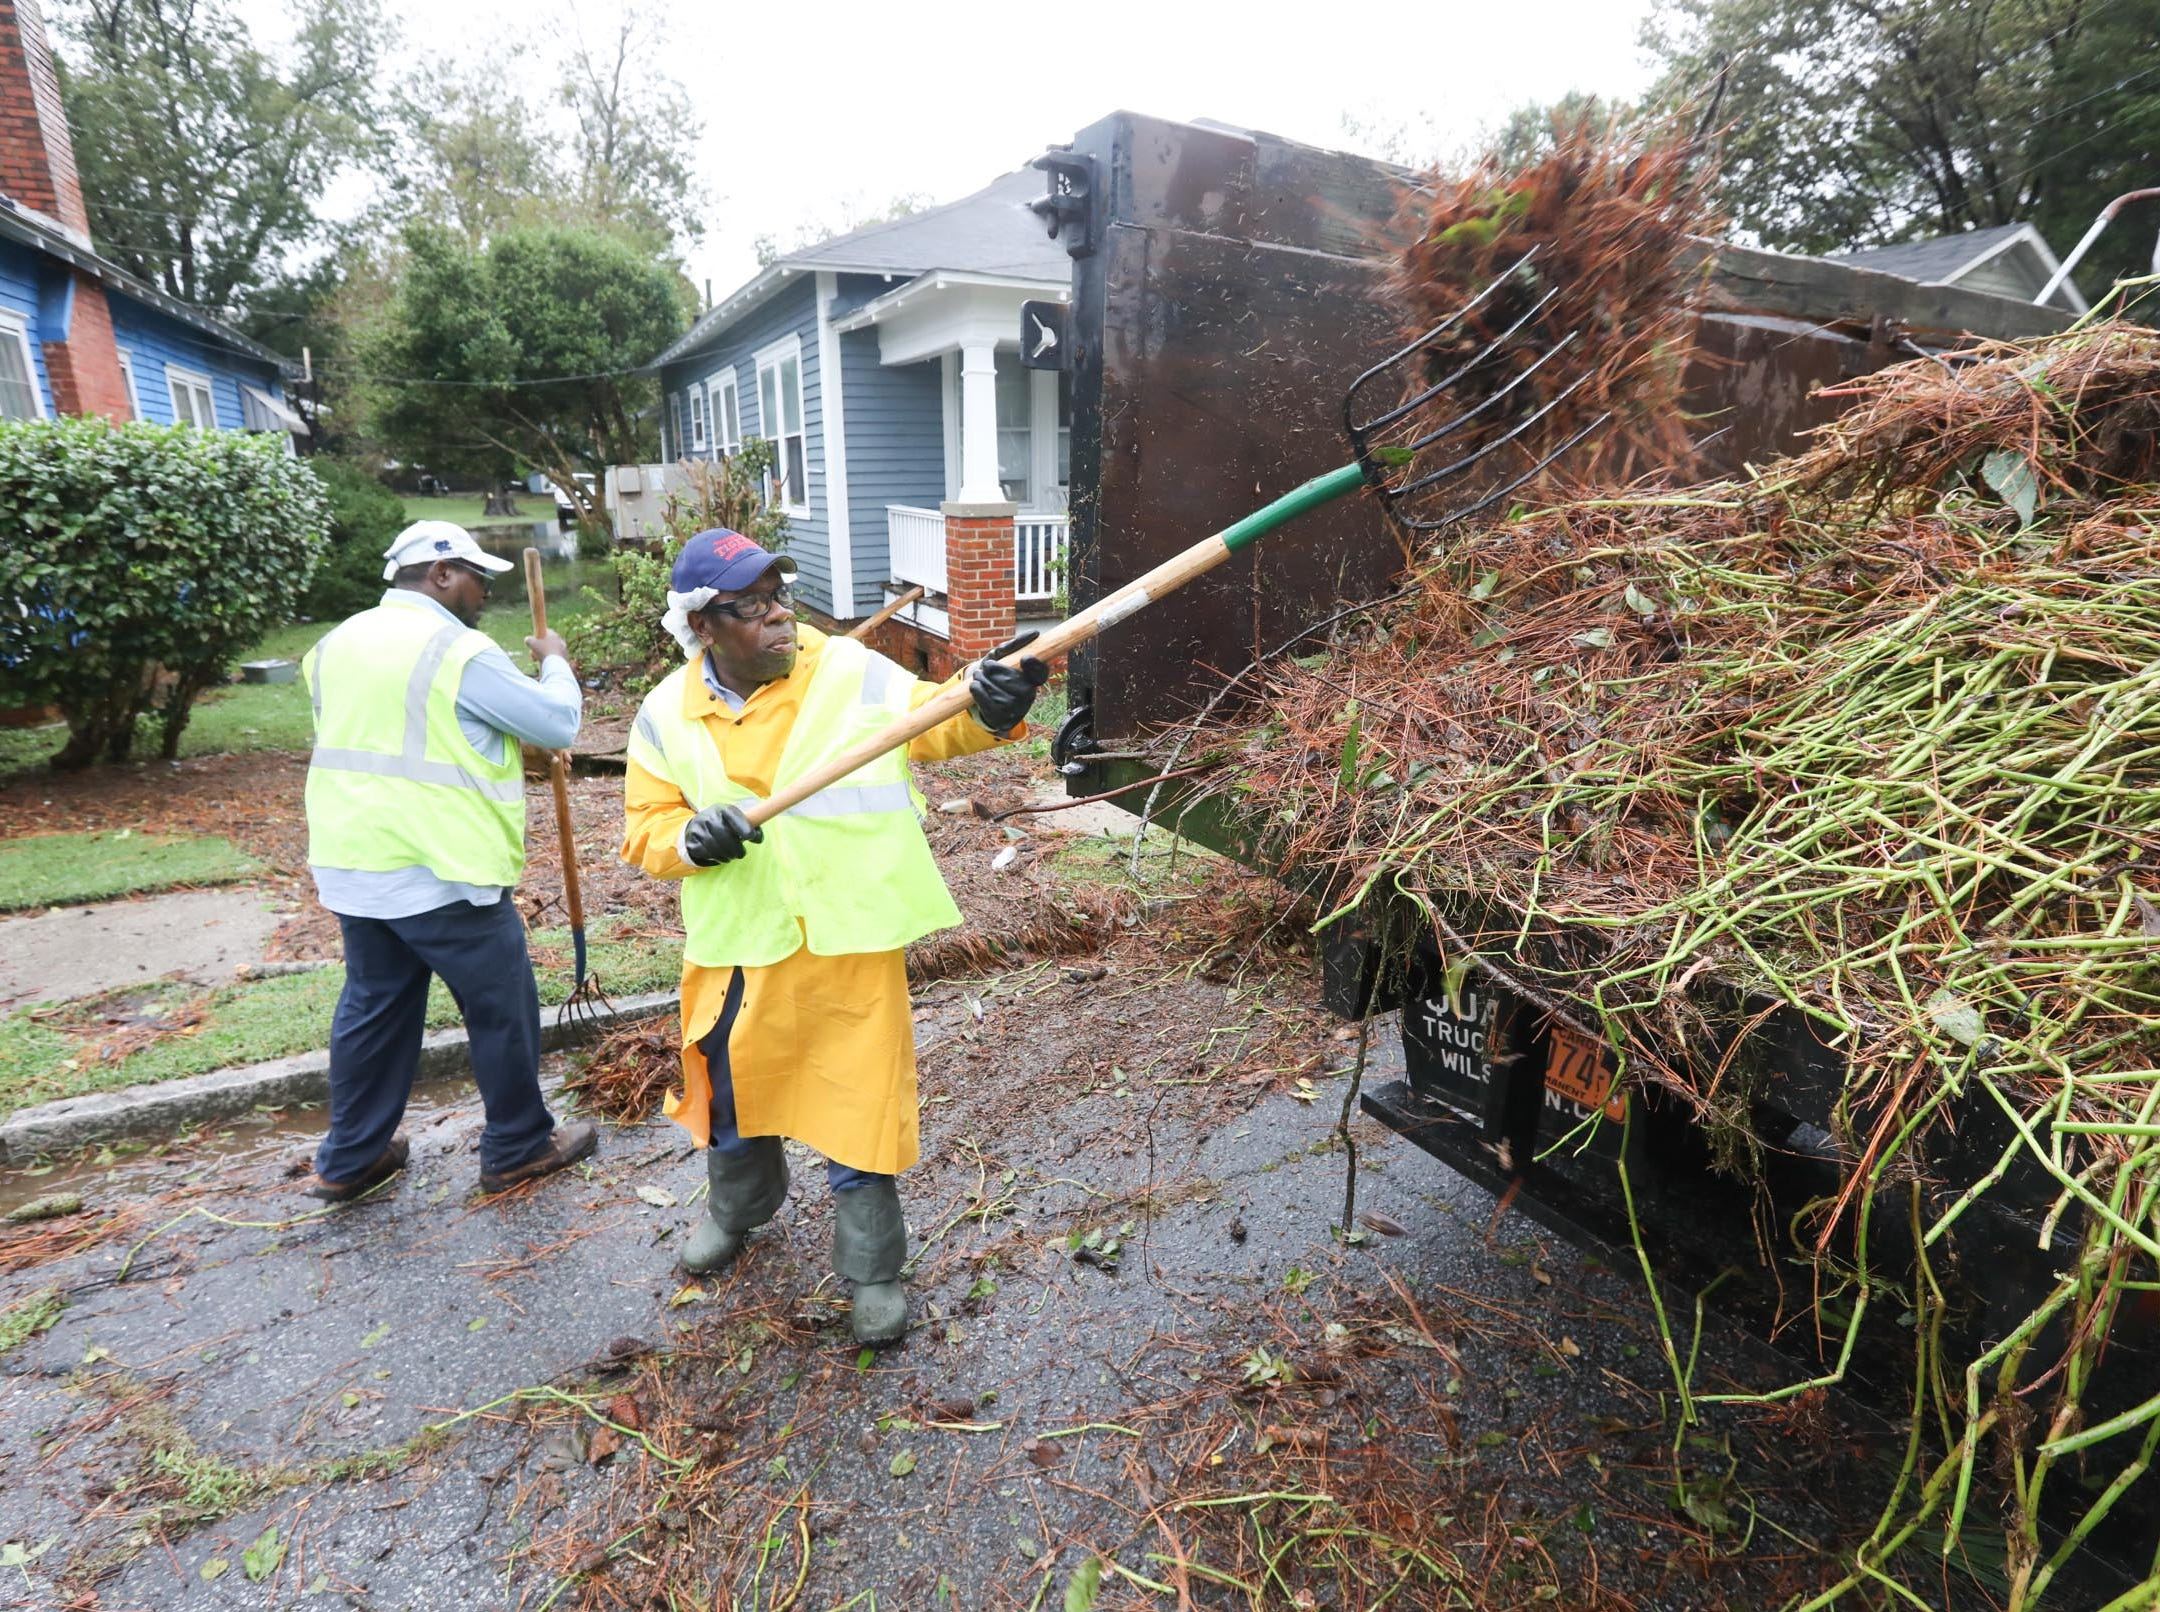 Public Works Department worker Noah Clark uses a pitch fork to remove debris from East Second St. in Washington, N.C. on Saturday, Sept. 15, 2018.